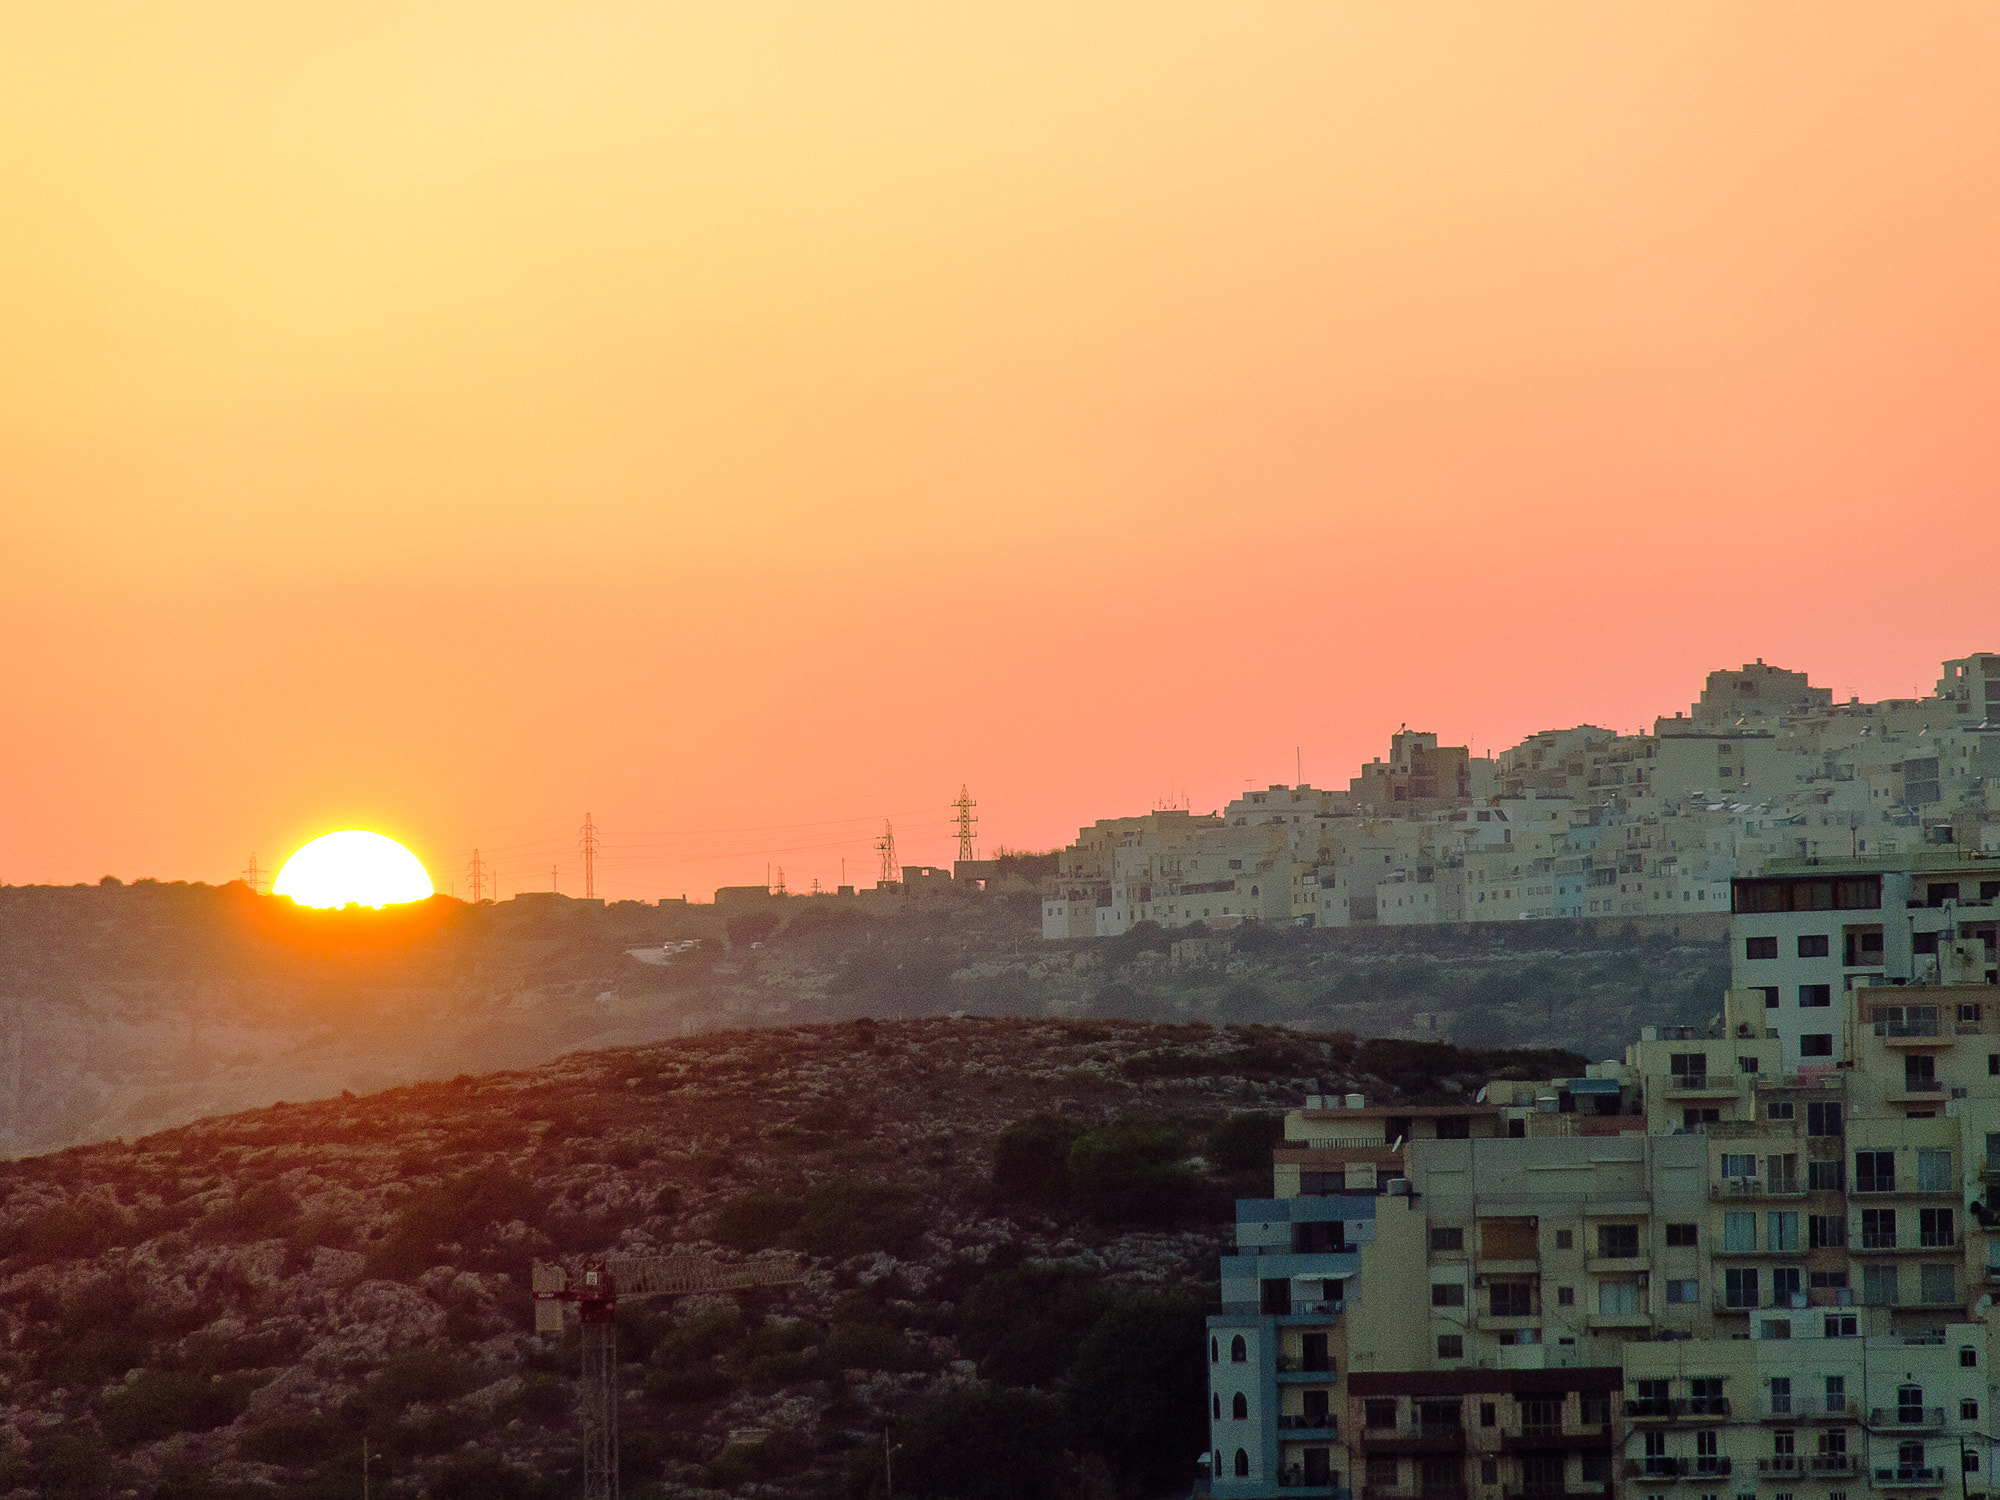 Photograph sunset over mellieha, malta by ivon daniel on 500px